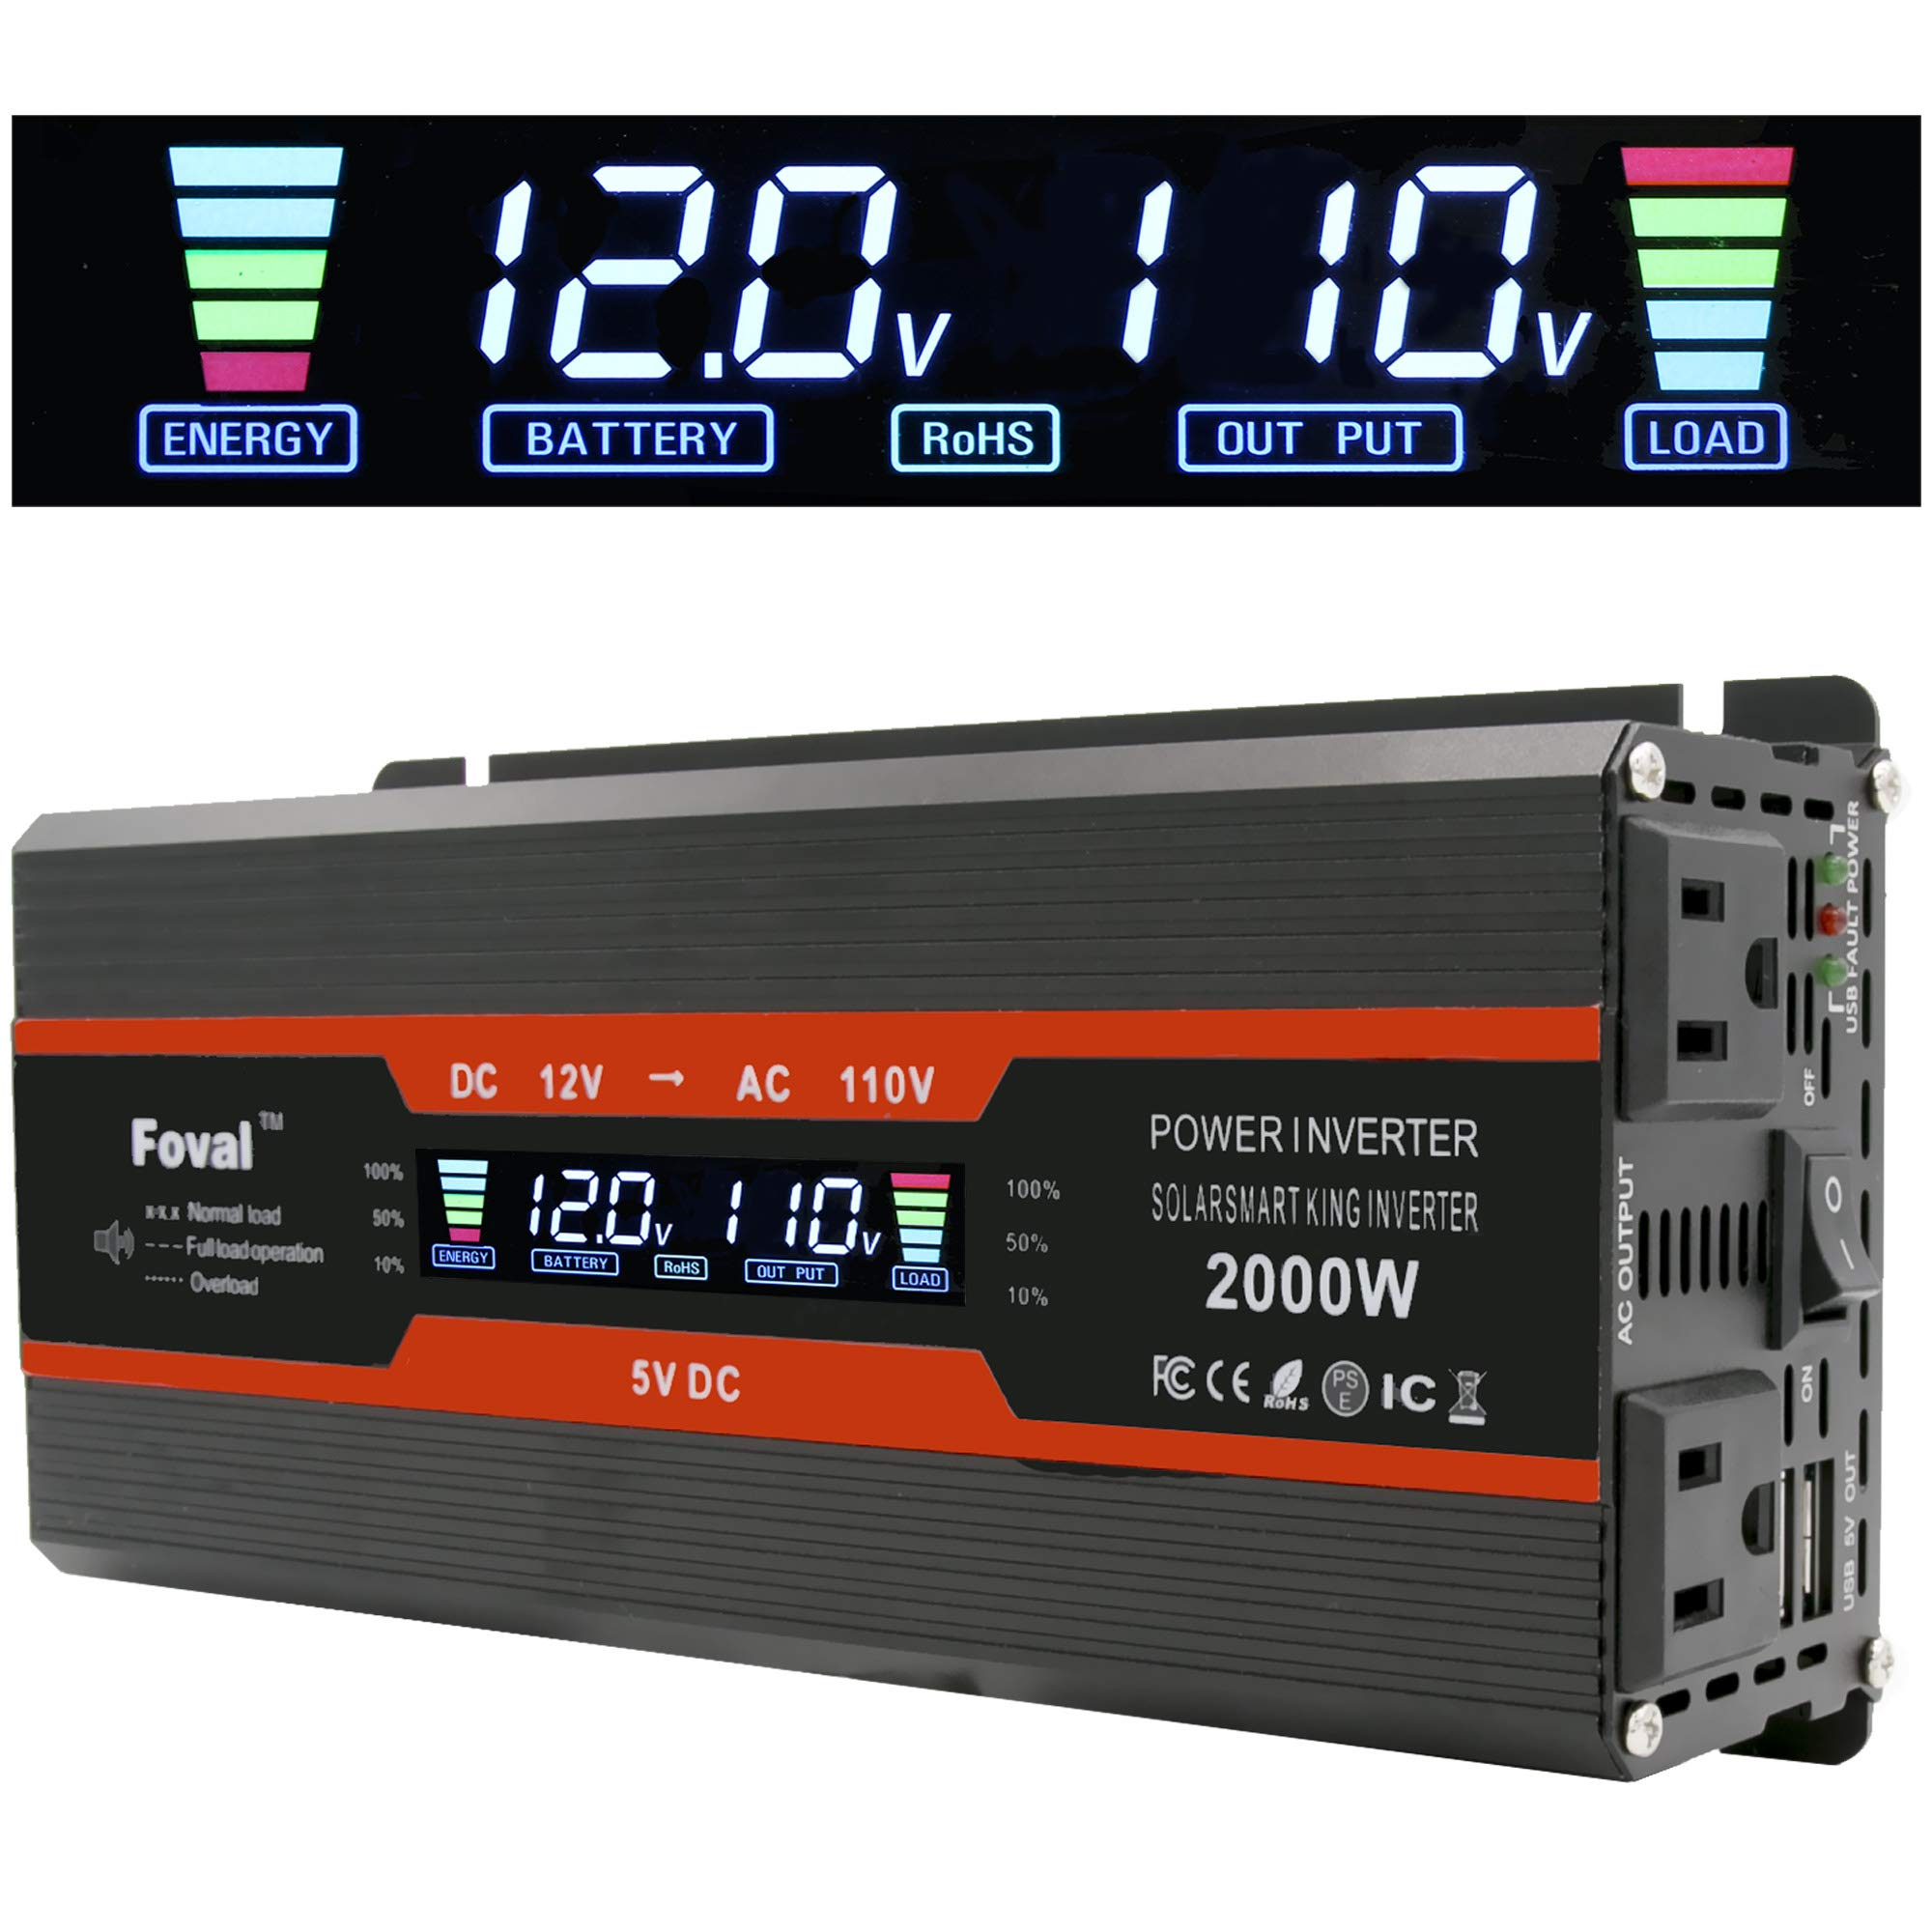 Cantonape 1000W/2000W(Peak) Car Power Inverter DC 12V To 110V AC Converter With LCD Display Dual AC Outlets